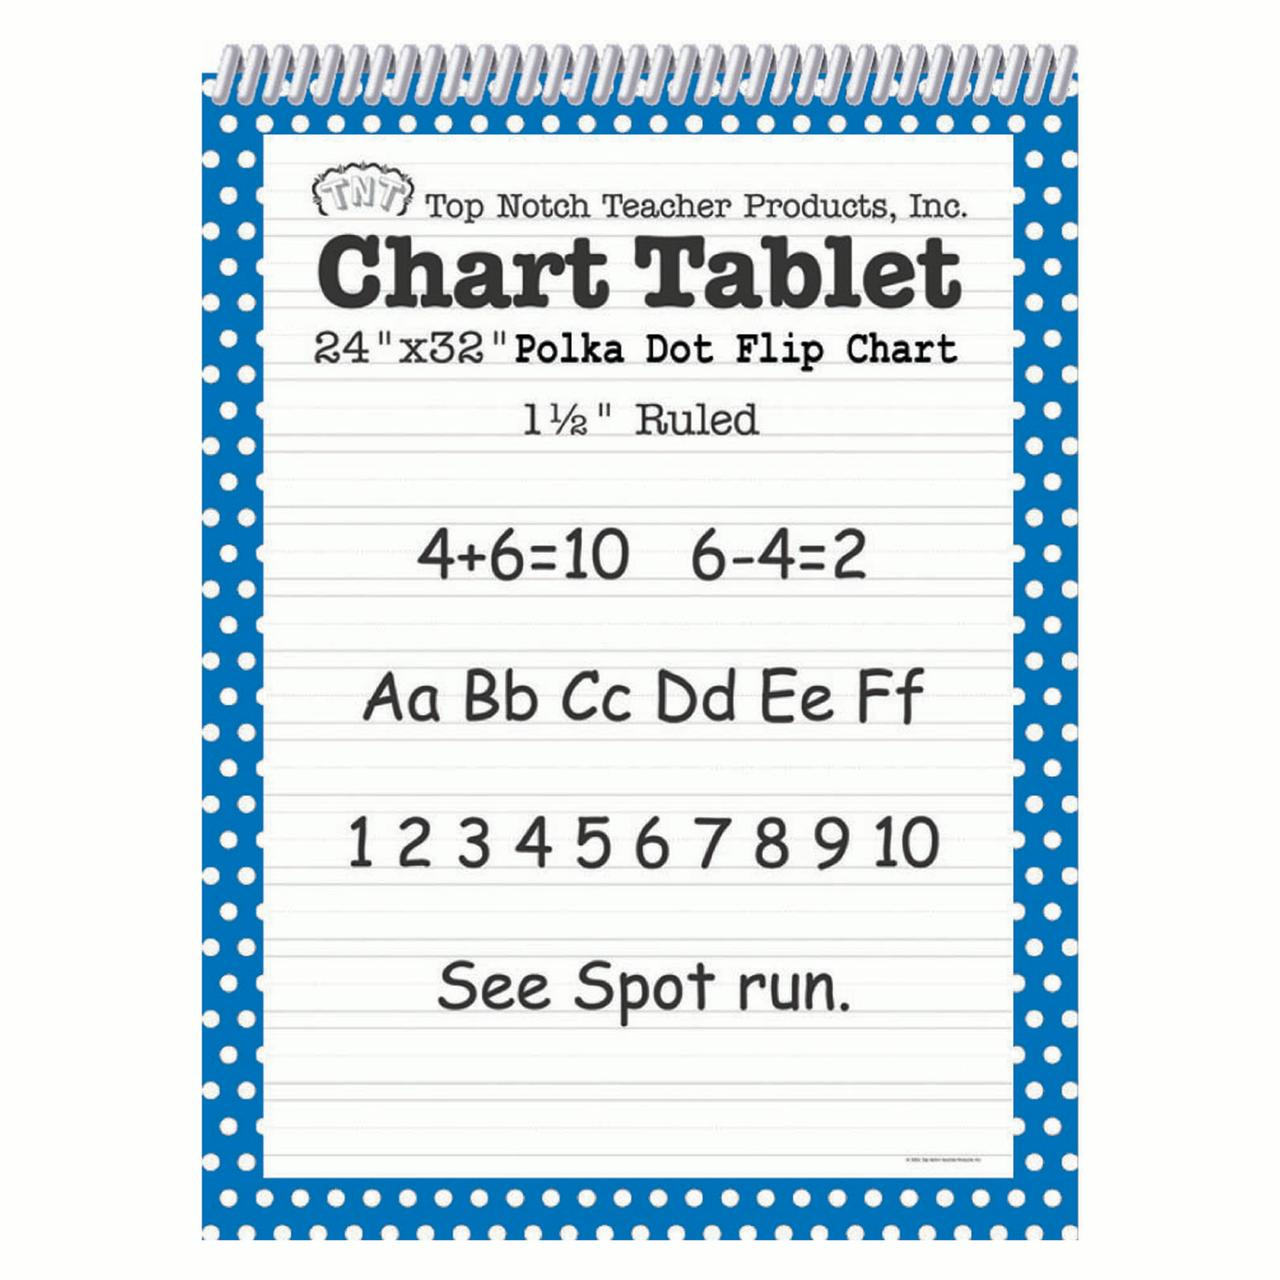 "Top Notch Teacher Products Chart Tablet Polka Dot- 1 1/2"" Ruled"